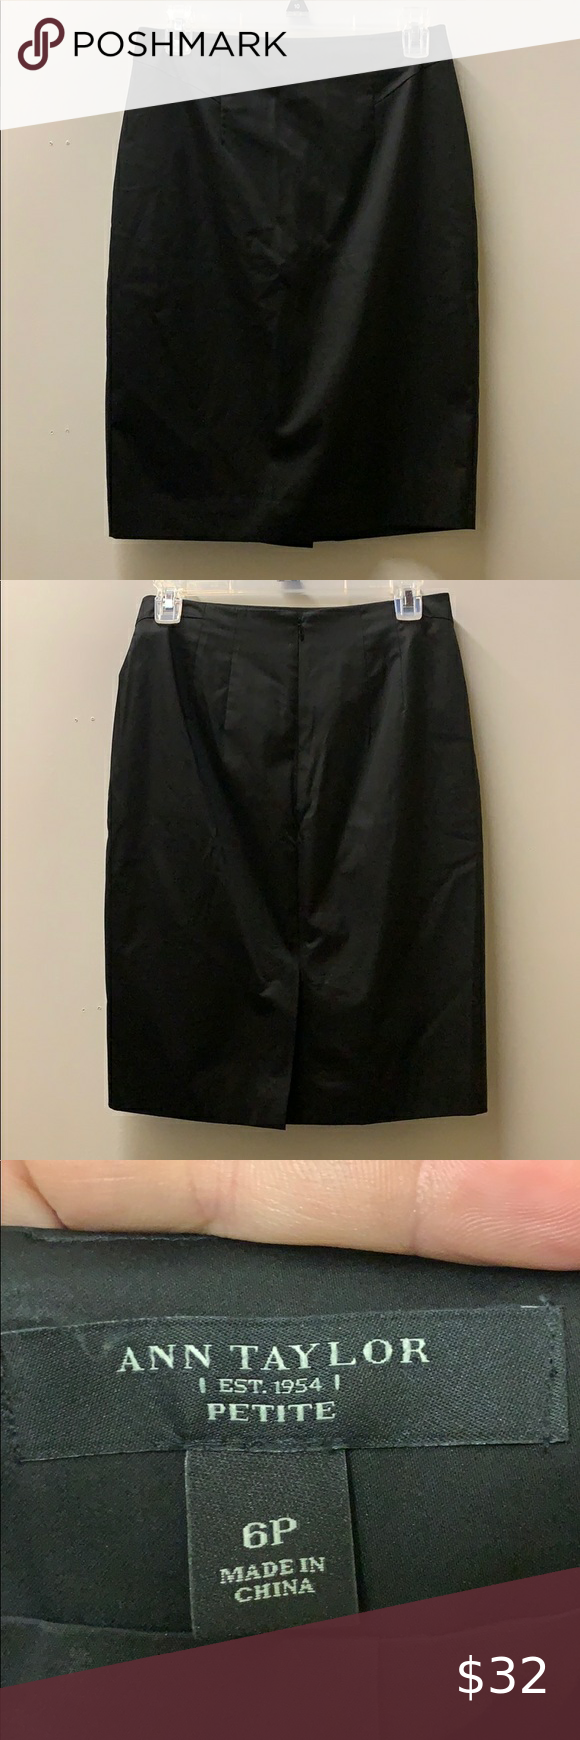 """Ann Taylor black pencil skirt Skirt is in like new condition. 22"""" from top to bottom. Waist 14 1/2"""" from seam to seam.  #055 Ann Taylor Skirts Pencil"""